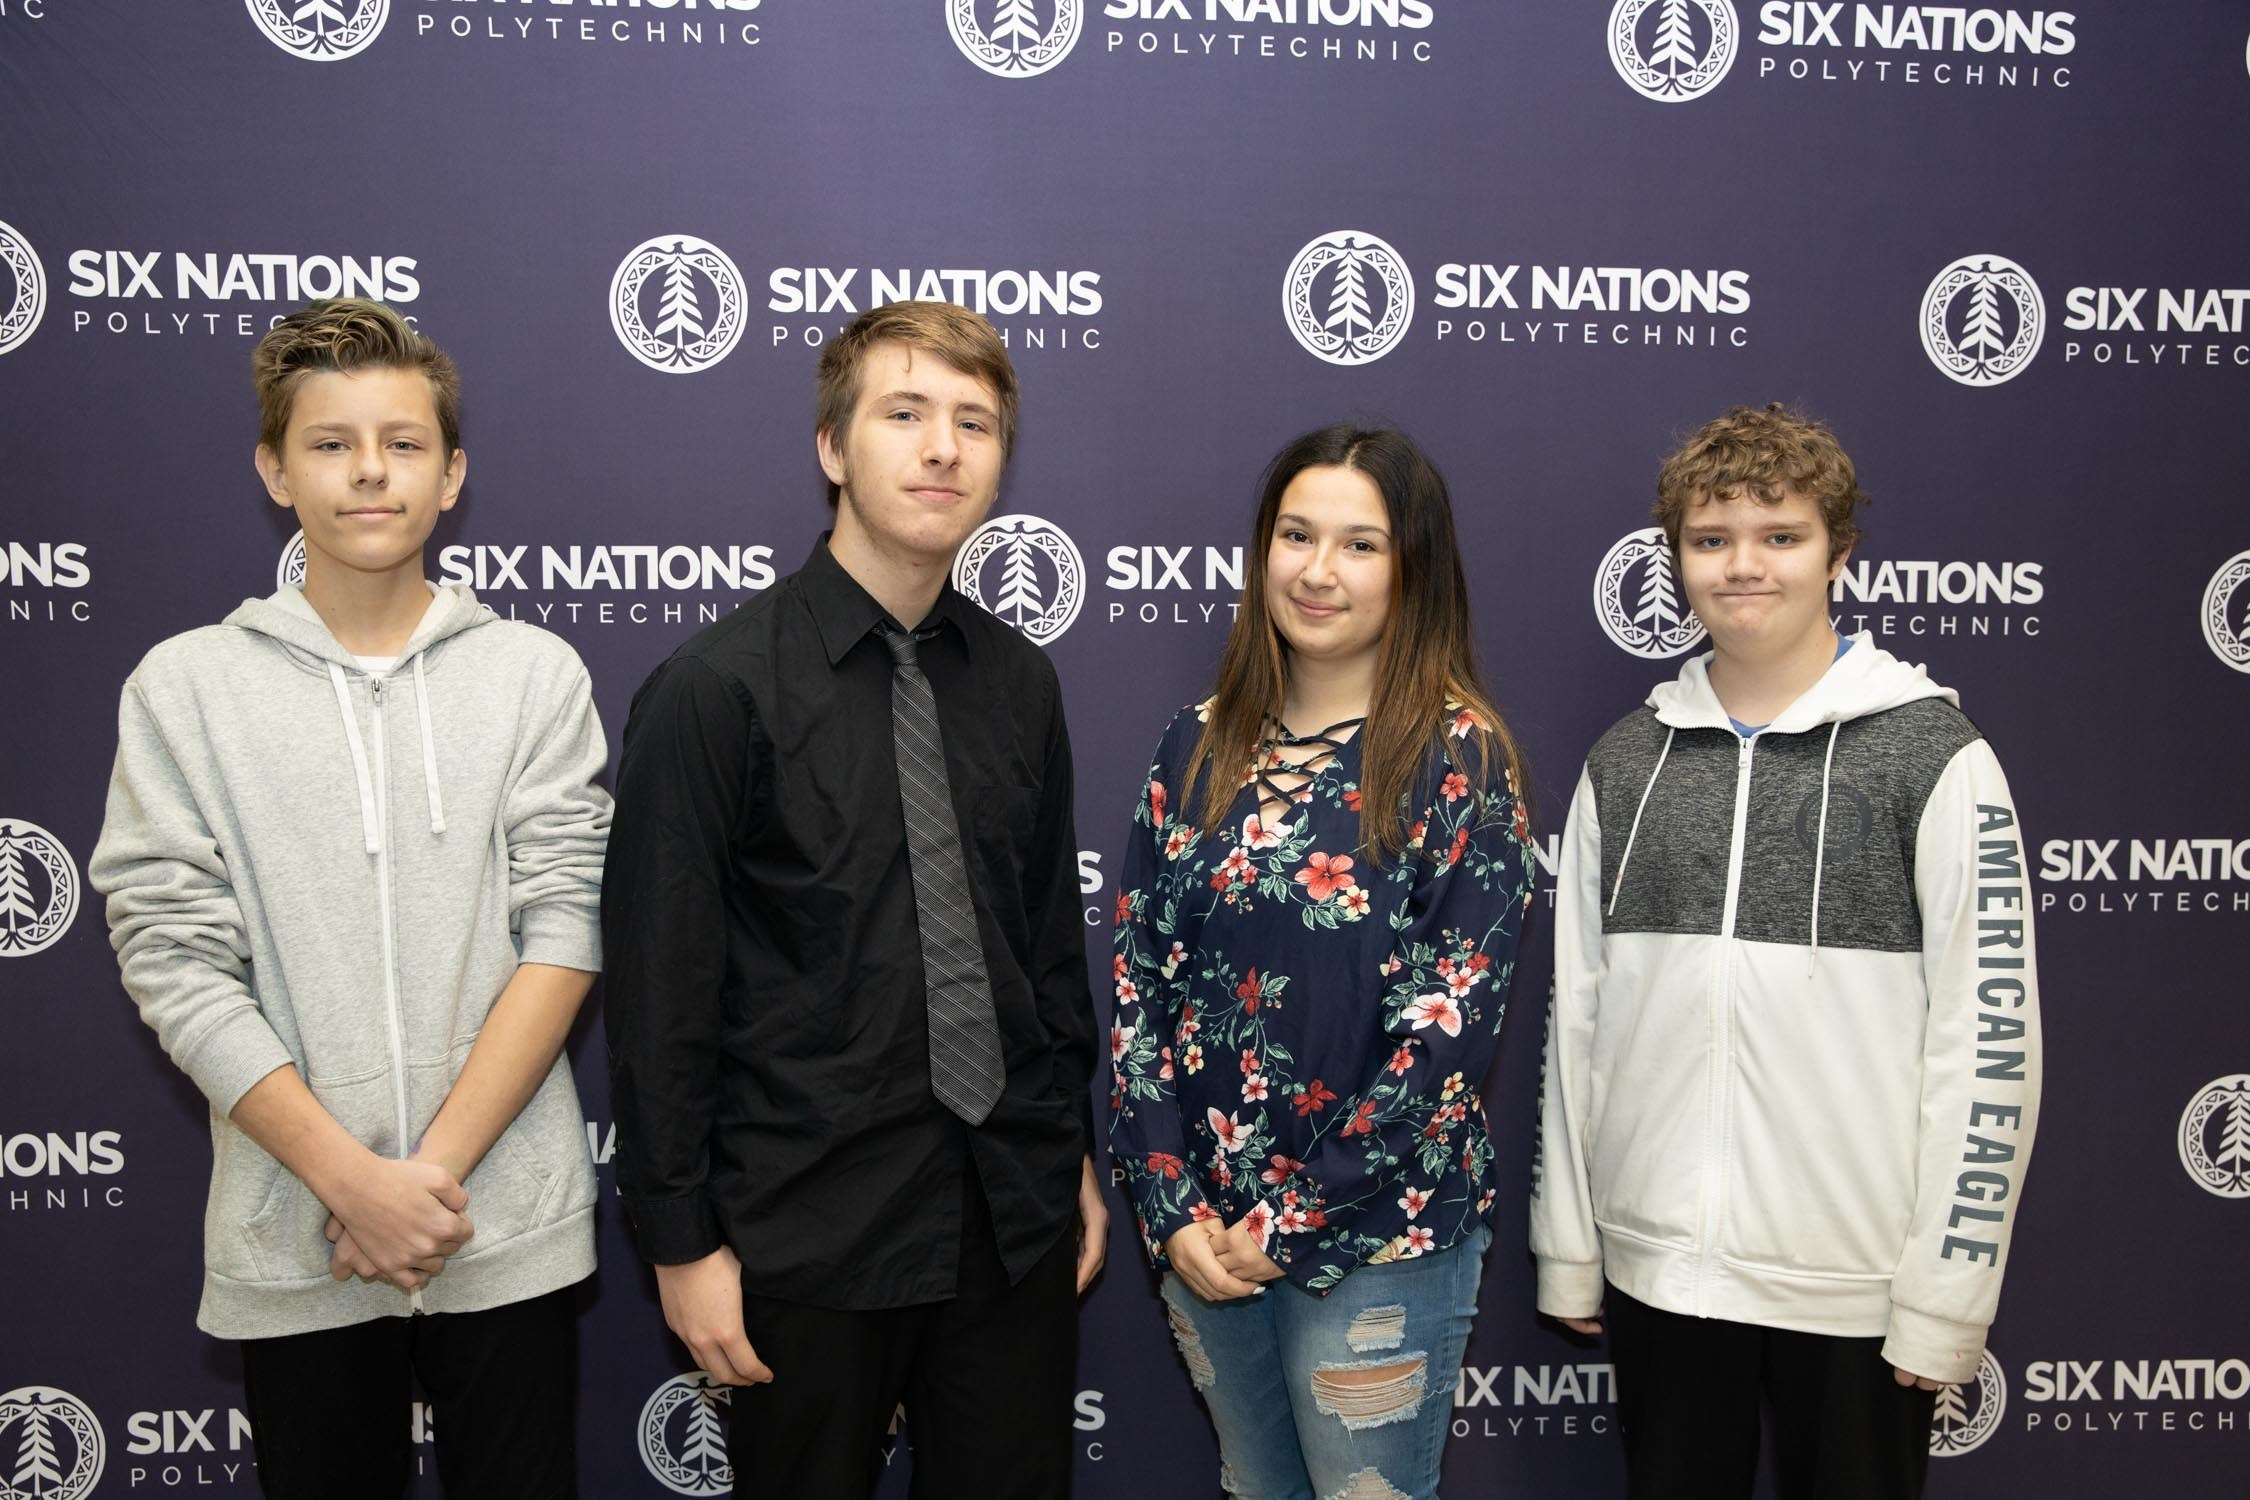 Six Nations Polytechnic Steam Academy Partners With Ibm Canada And Mohawk College To Launch The P Tech School Model